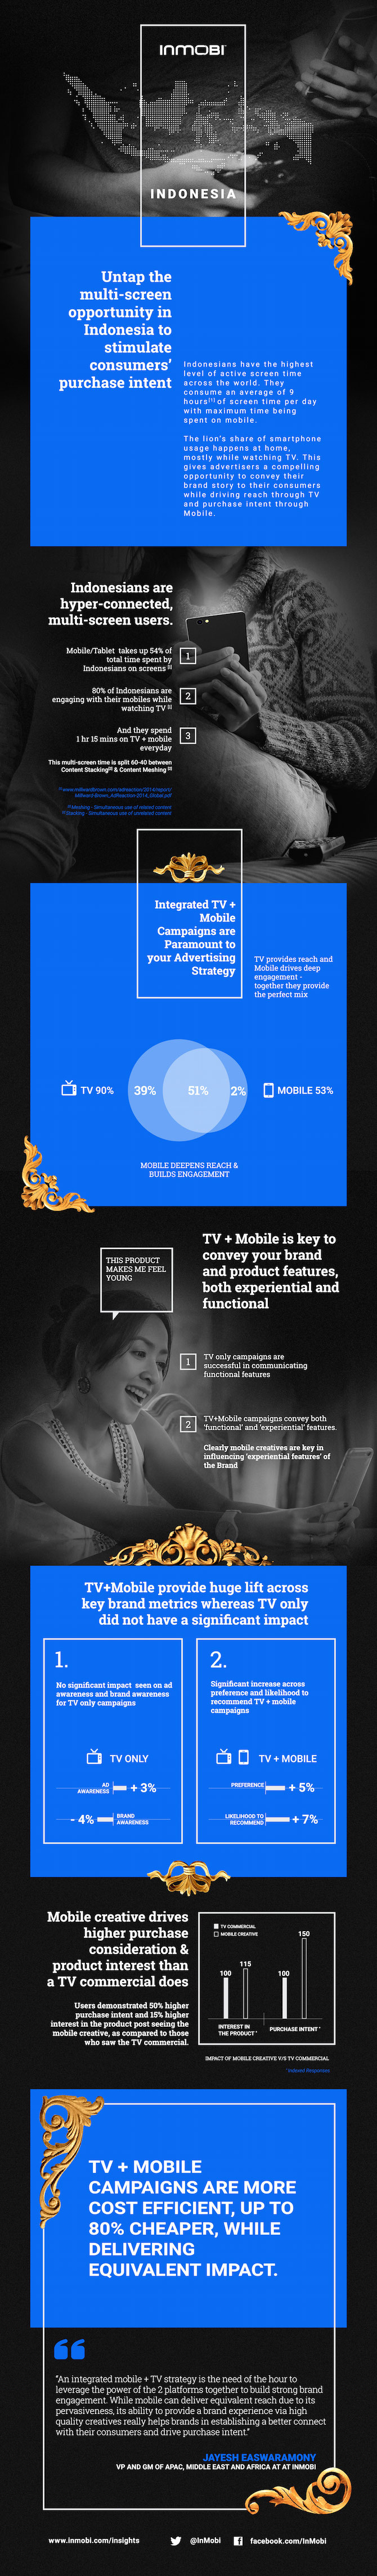 integrated 'tv + mobile' campaigns drive higher purchase intent ... - Mobile Tv Indonesia